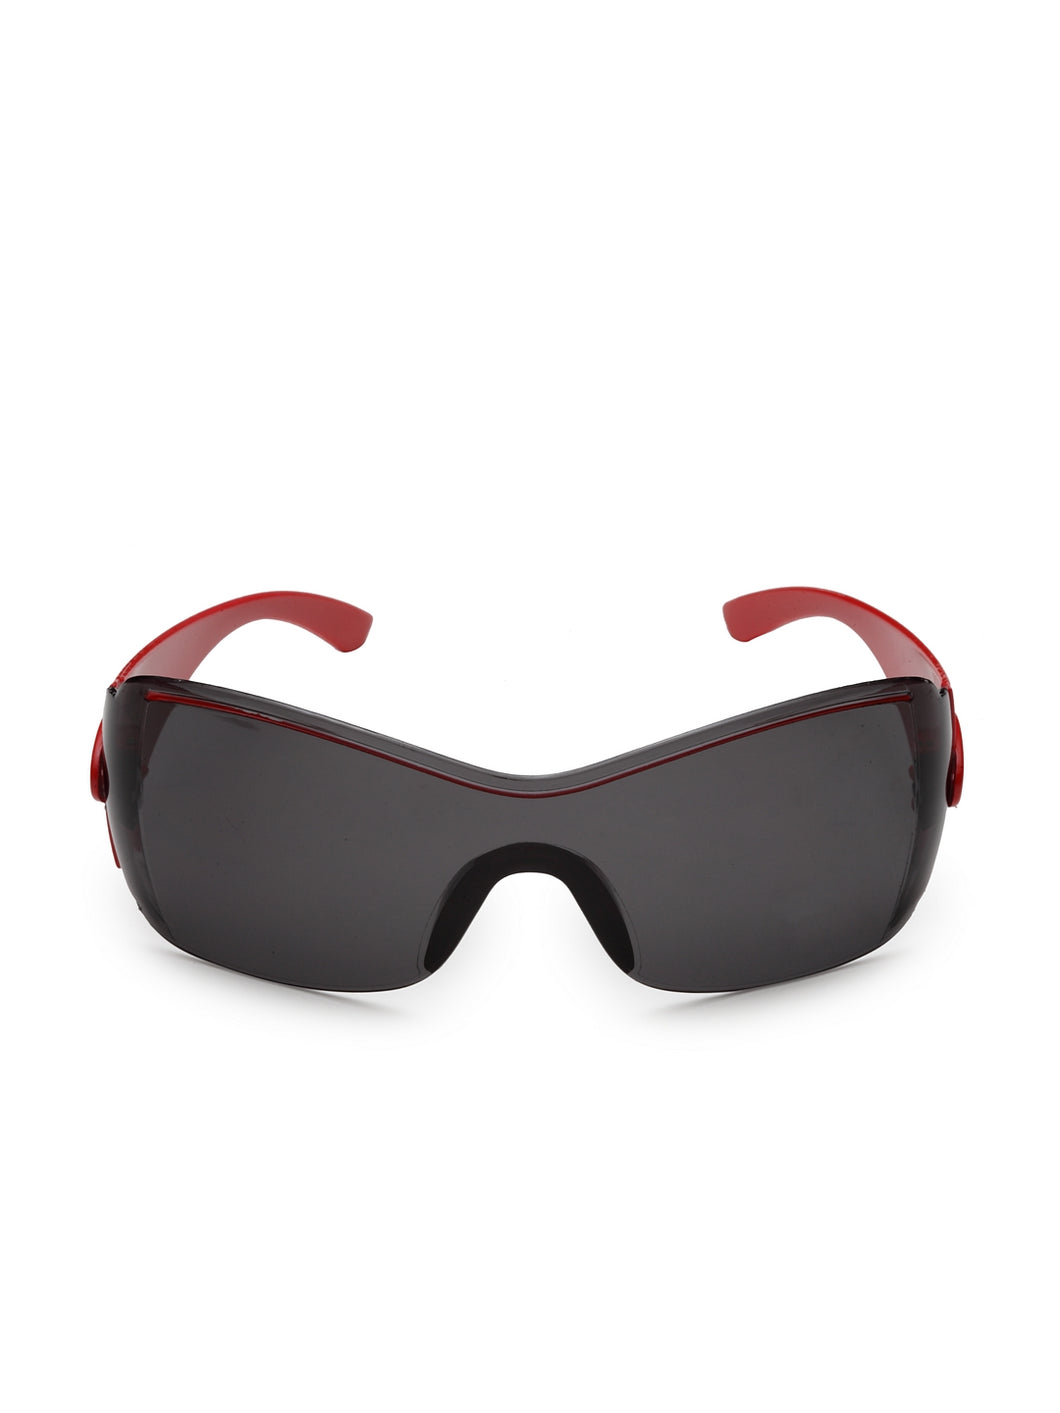 Stol'n Premium Attractive Fashionable UV-Protected Sports Sunglasses - Black and Red